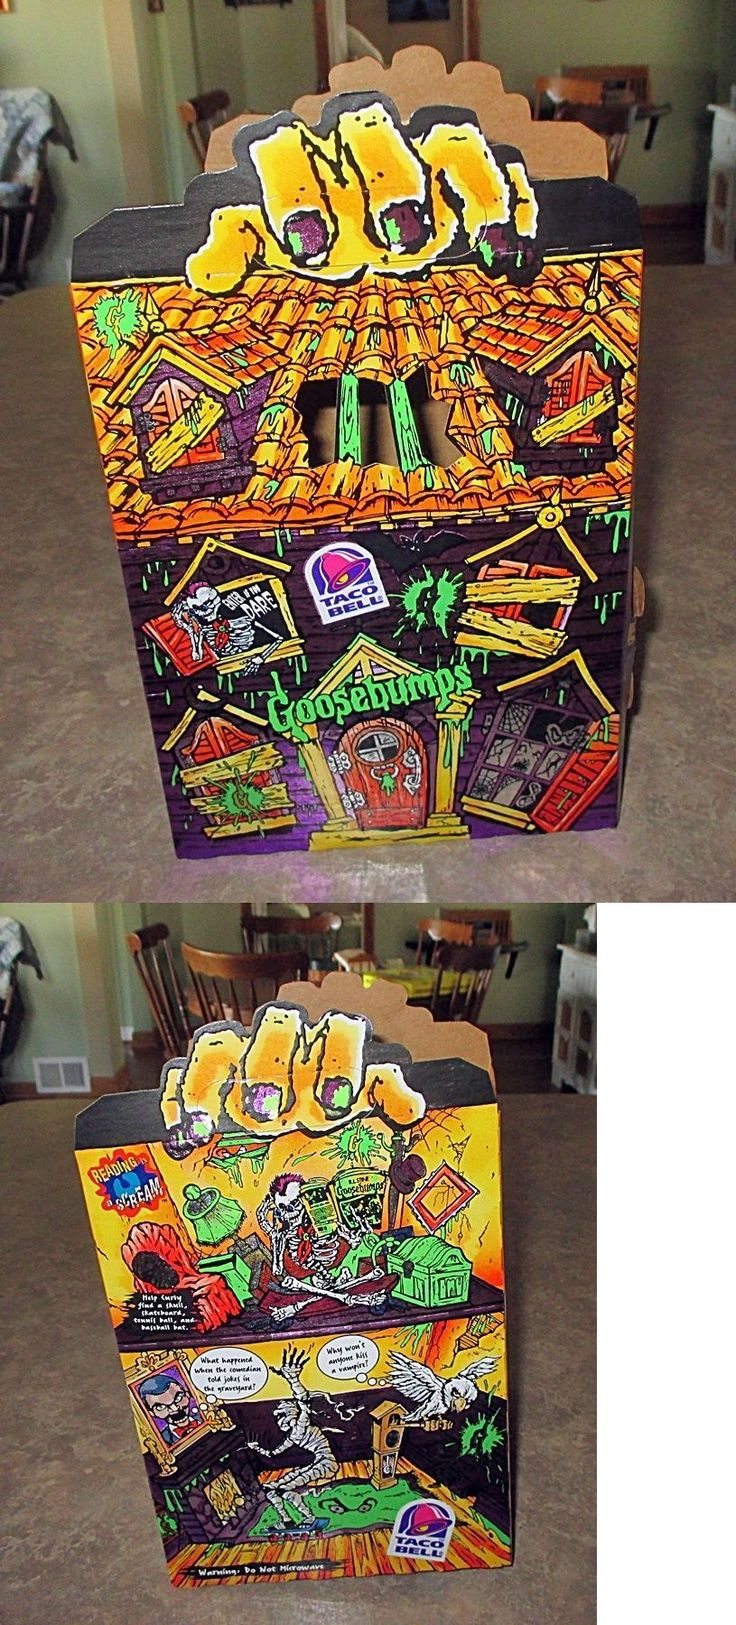 Fast Food 767: 1997 Taco Bell Goosebumps Haunted House Foil Box Kids Meal Slappy Cuddles Mummy -> BUY IT NOW ONLY: $42.79 on eBay!